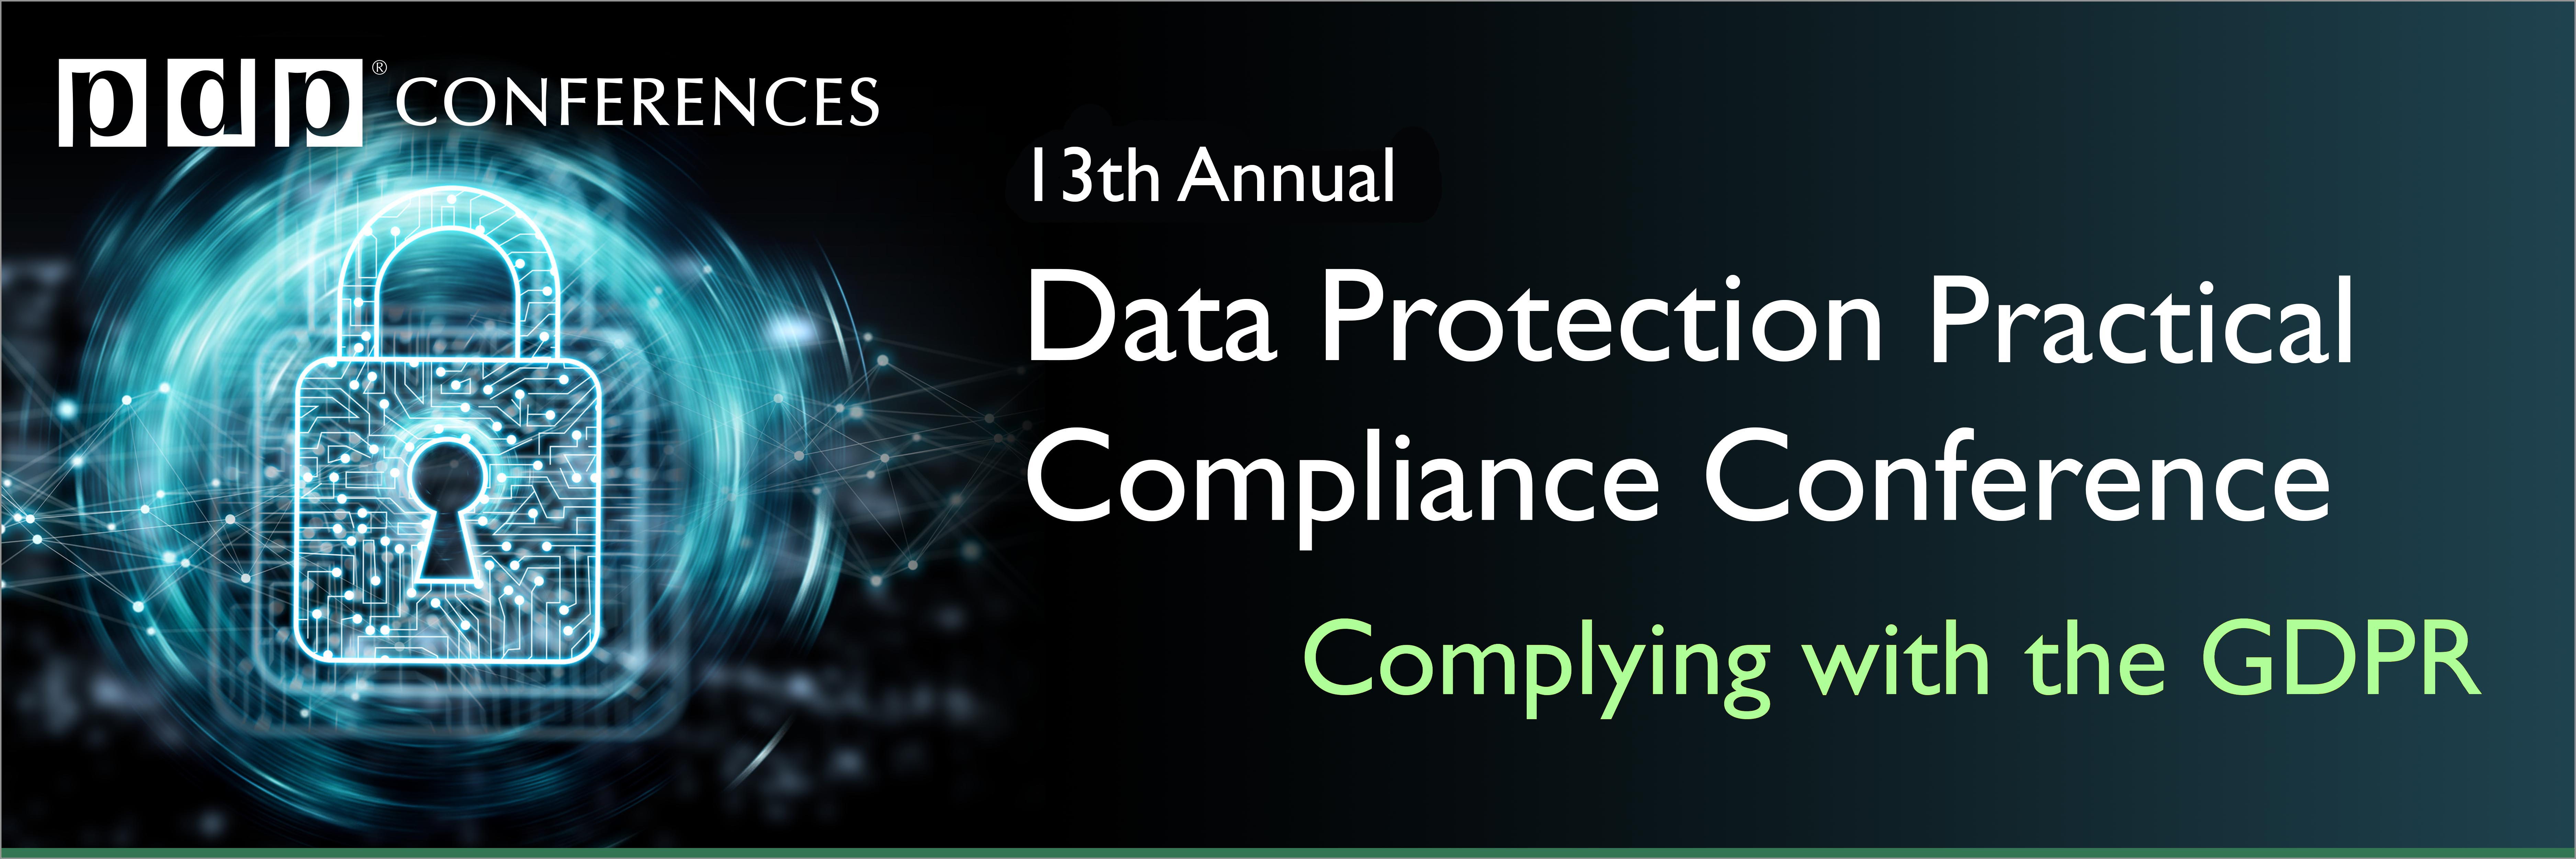 13th Annual Data Protection Practical Compliance Conference